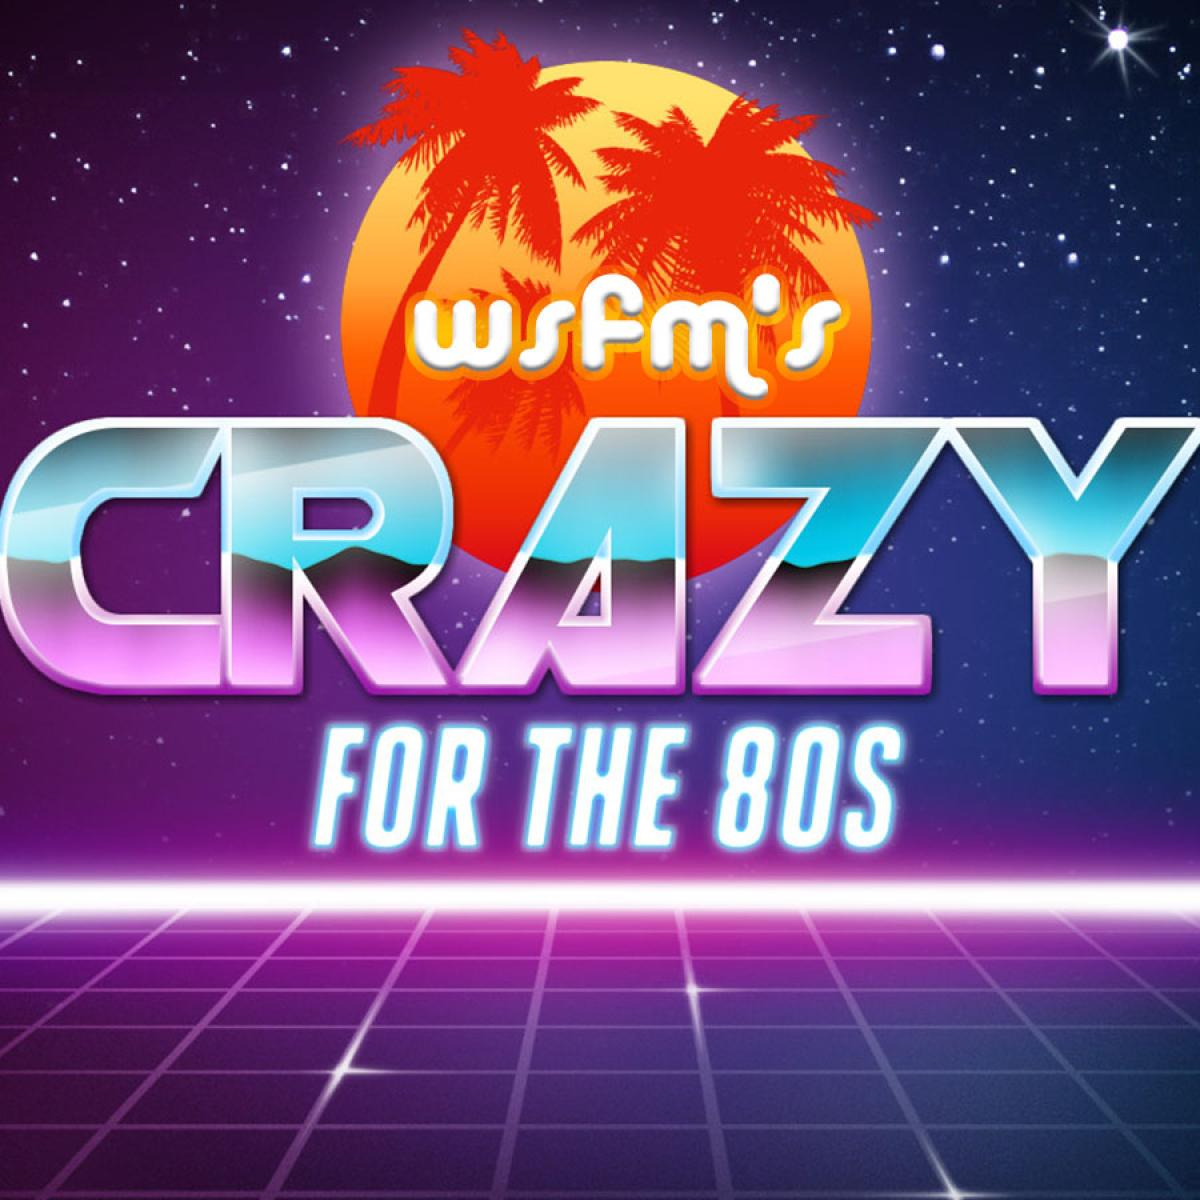 Vote for WSFM's Top 100 #1 Songs Of The 80s